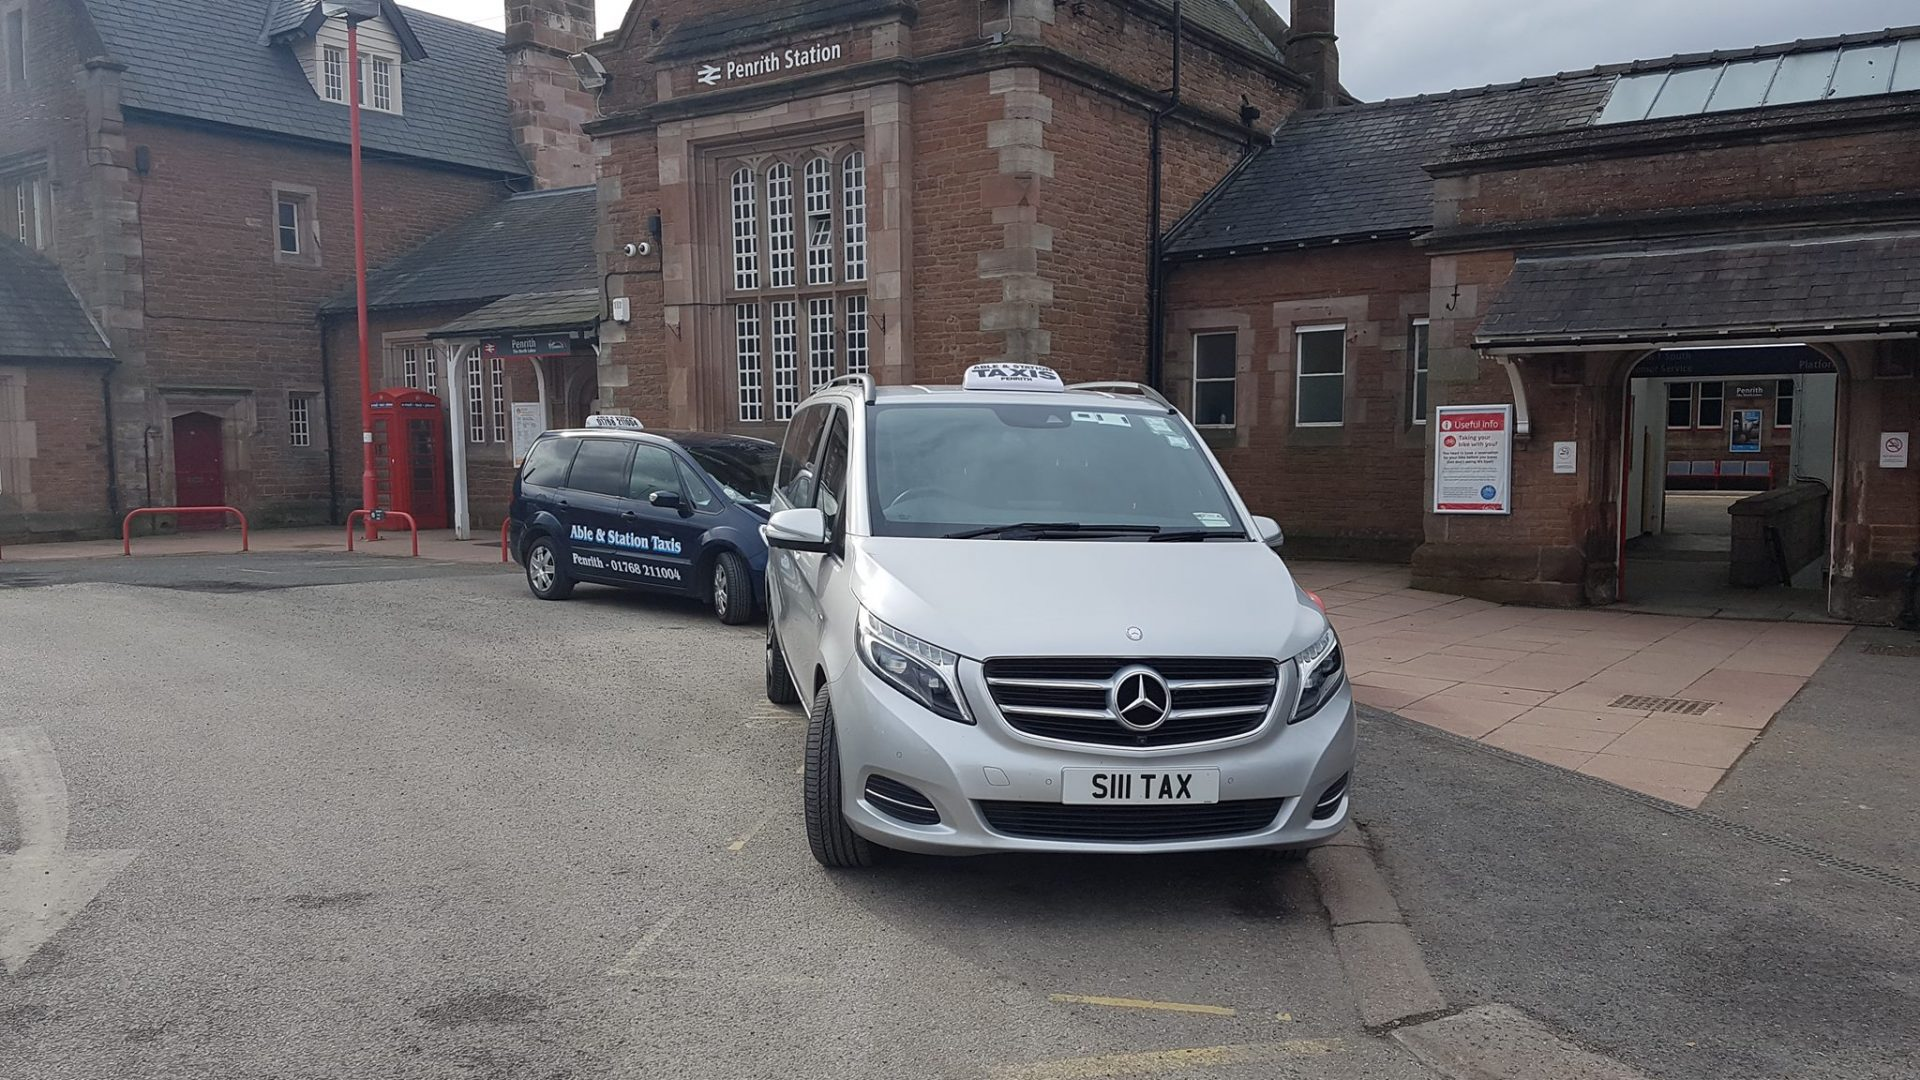 Station Taxis Penrith